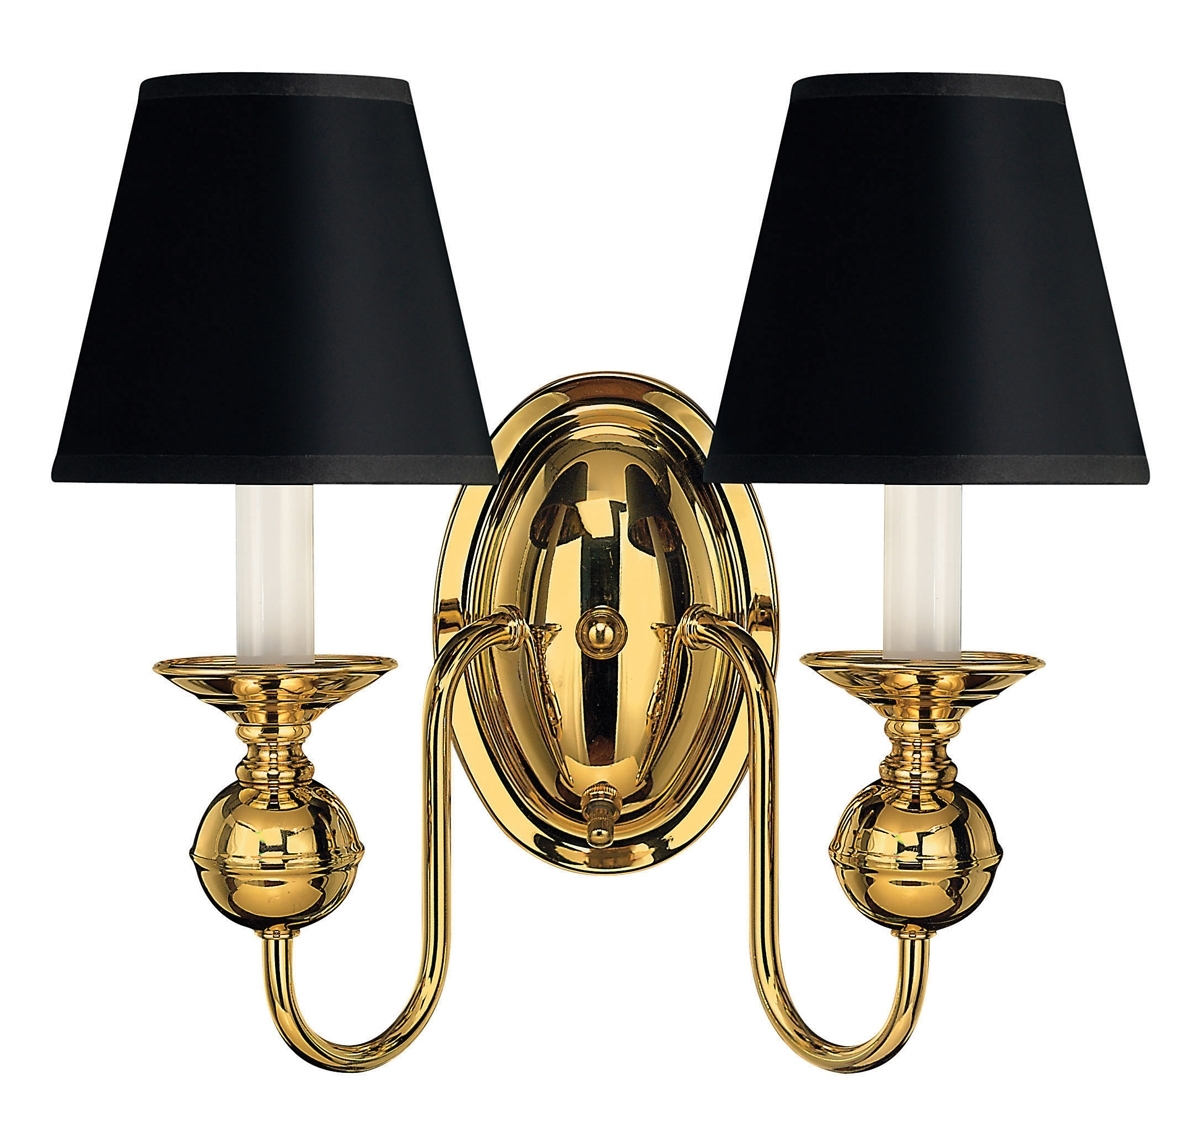 Widely Used Polished Brass Outdoor Wall Lighting Regarding Antique Brass Outdoor Wall Sconces Lighting Fixtures Lights Polished (View 20 of 20)